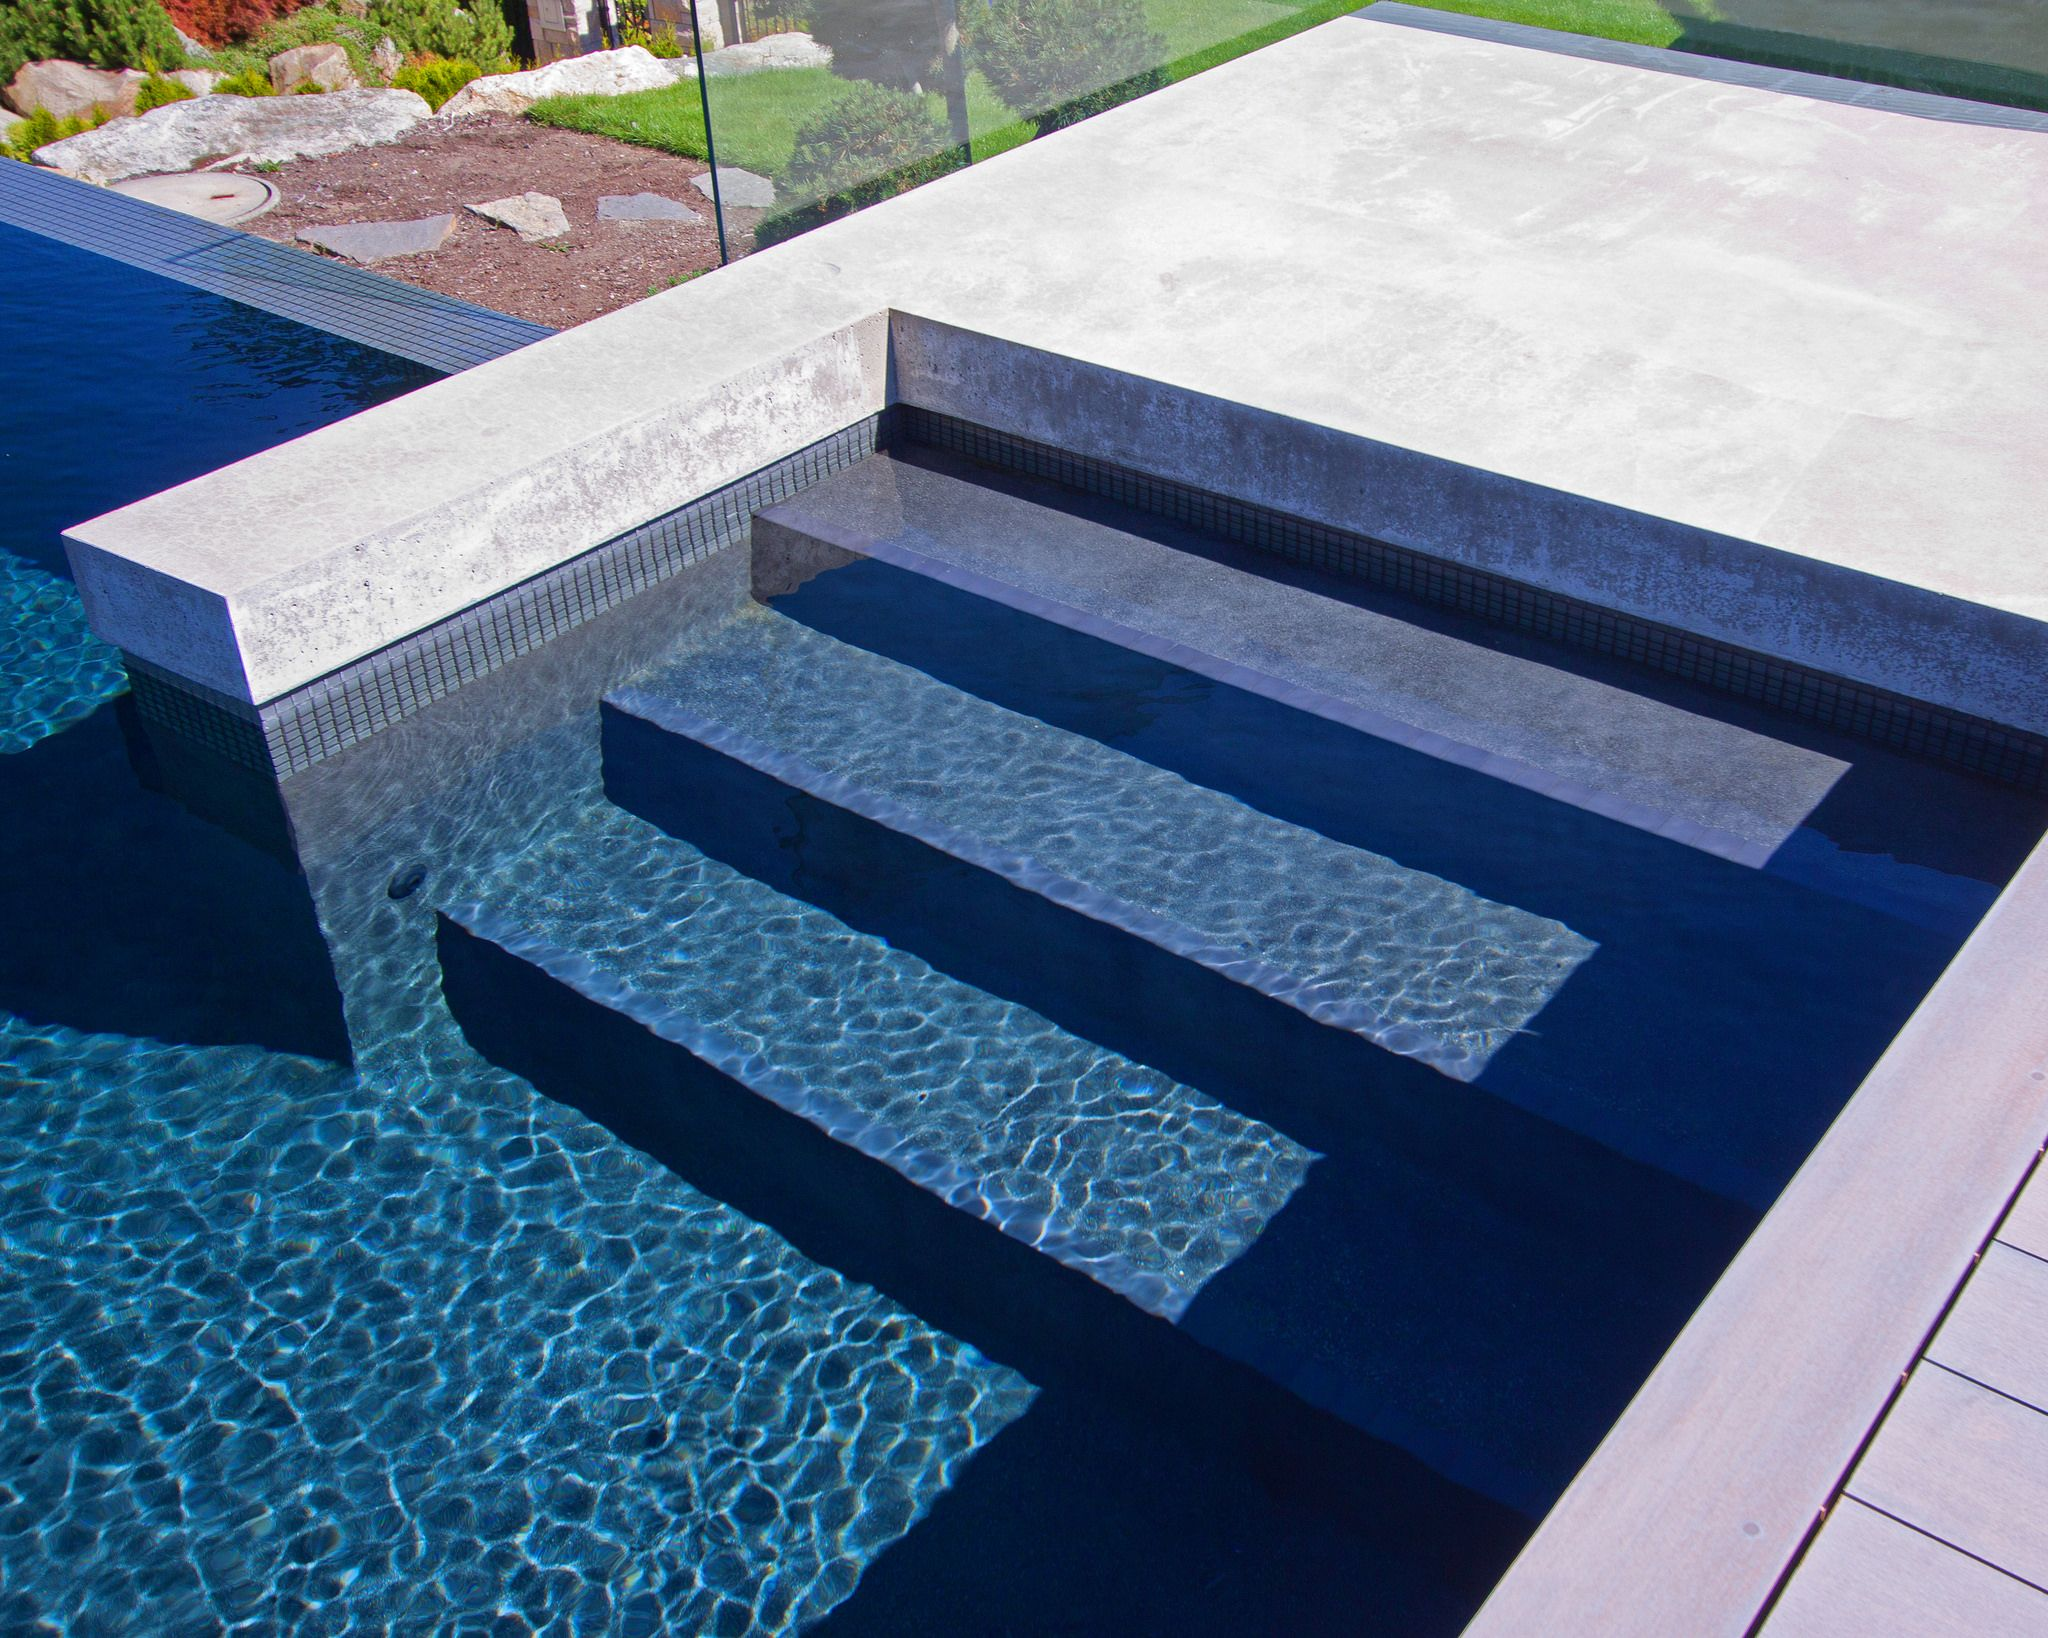 Alka Pool Vibrant Color Fashion Pinterest Charcoal Color Patios And Glass